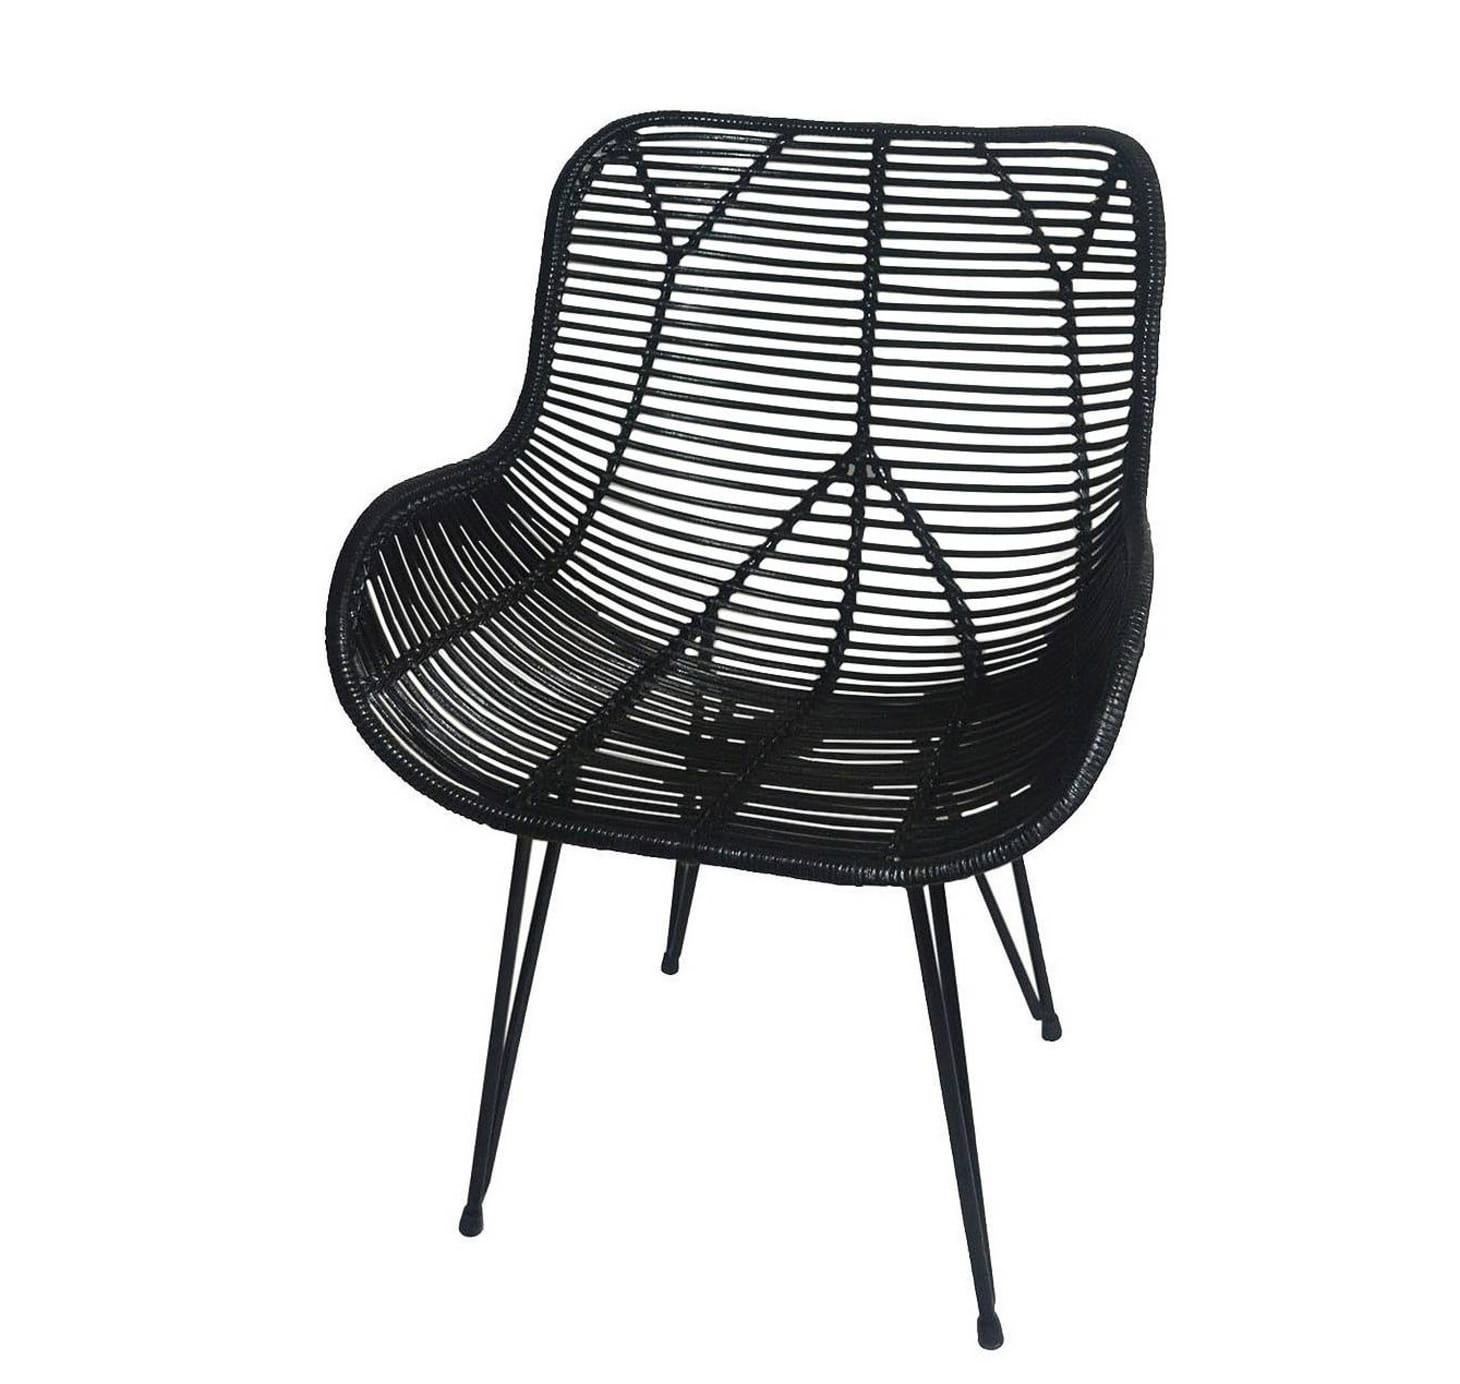 Fine 12 Really Good Looking Wicker Rattan Chairs Apartment Pabps2019 Chair Design Images Pabps2019Com